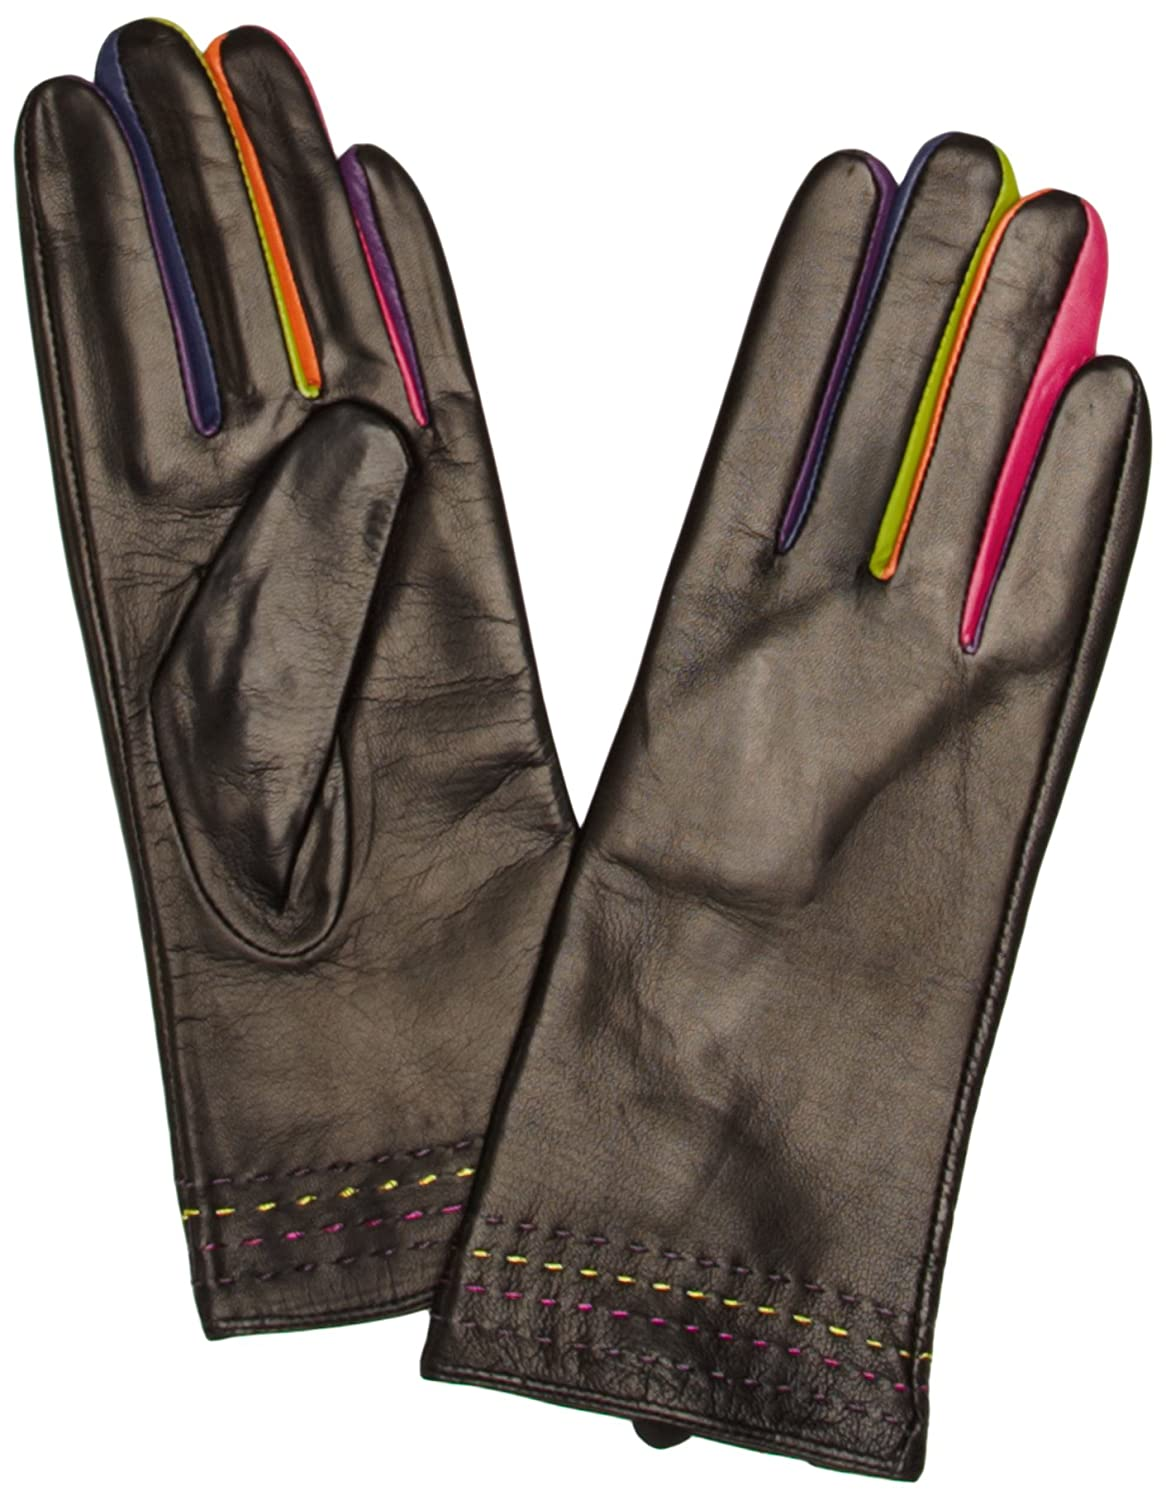 Black leather gloves with coloured fingers - Pia Rossini Women S Montreal Gloves